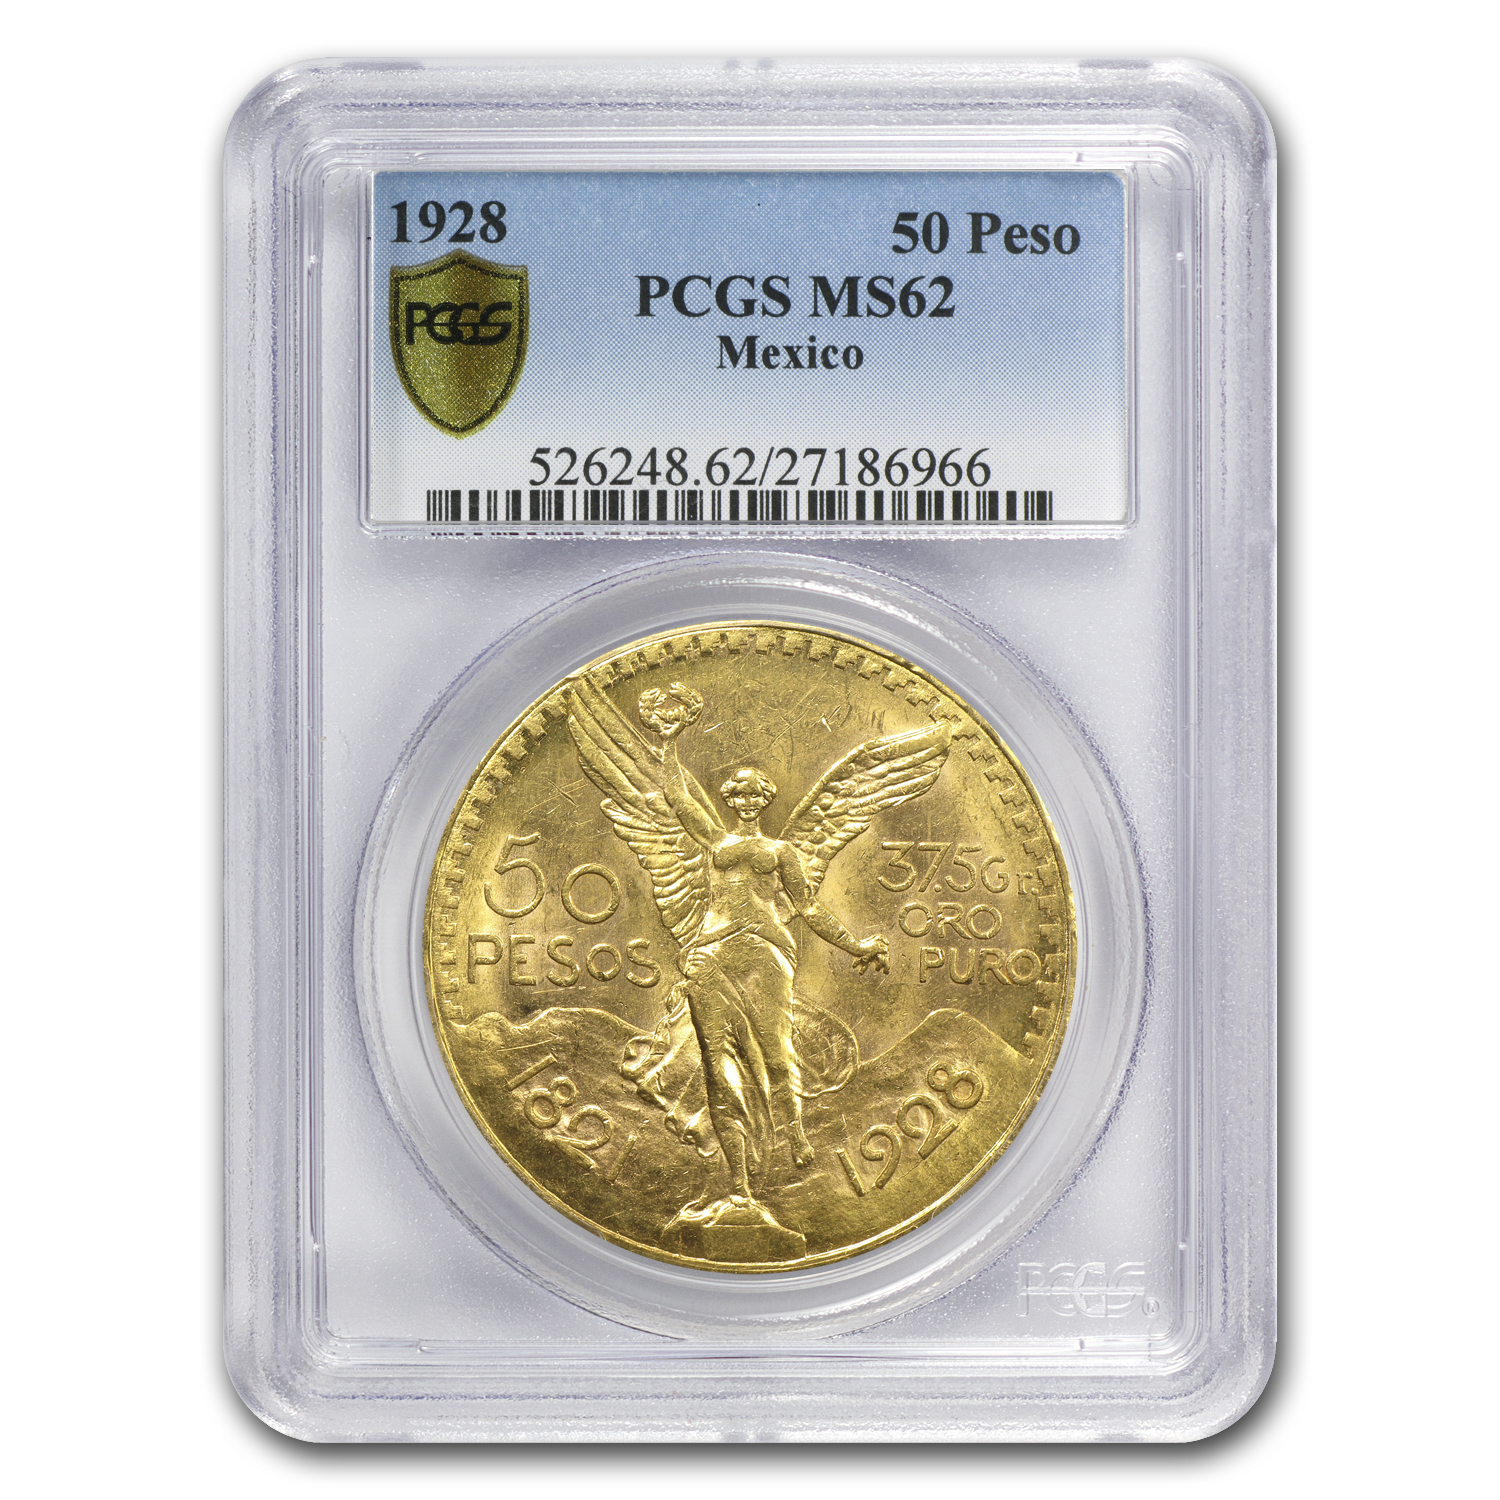 Mexico 1928 50 Pesos Gold Coin - MS-62 PCGS (Secure Plus!)